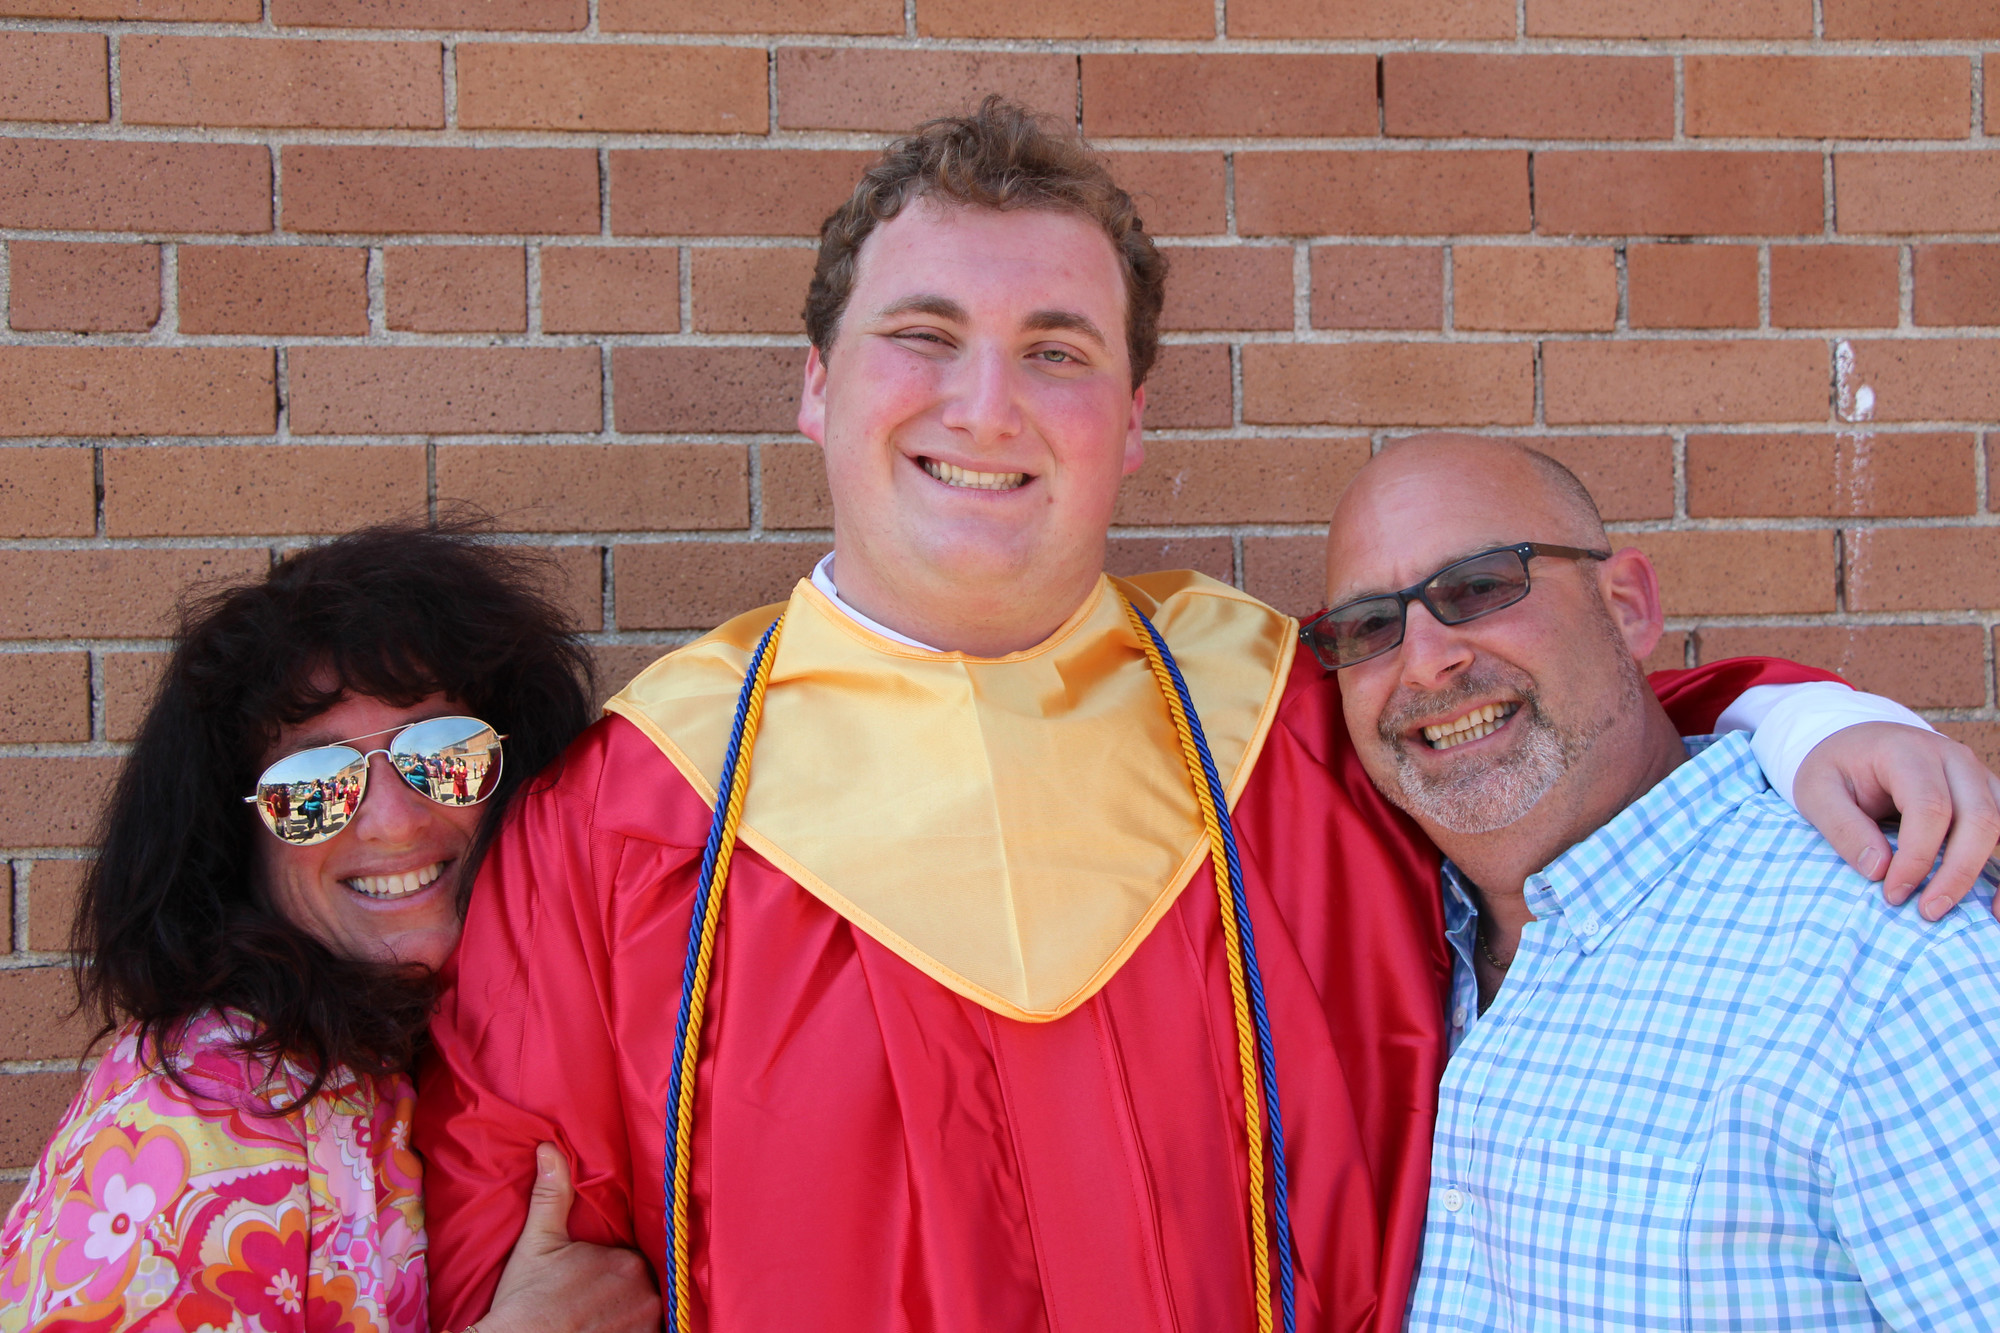 Graduate Jake Moldowsky thanked his father, Lee, and and his mother, Lisa, for all of their help and support. He will continue his education at Stony Brook University.